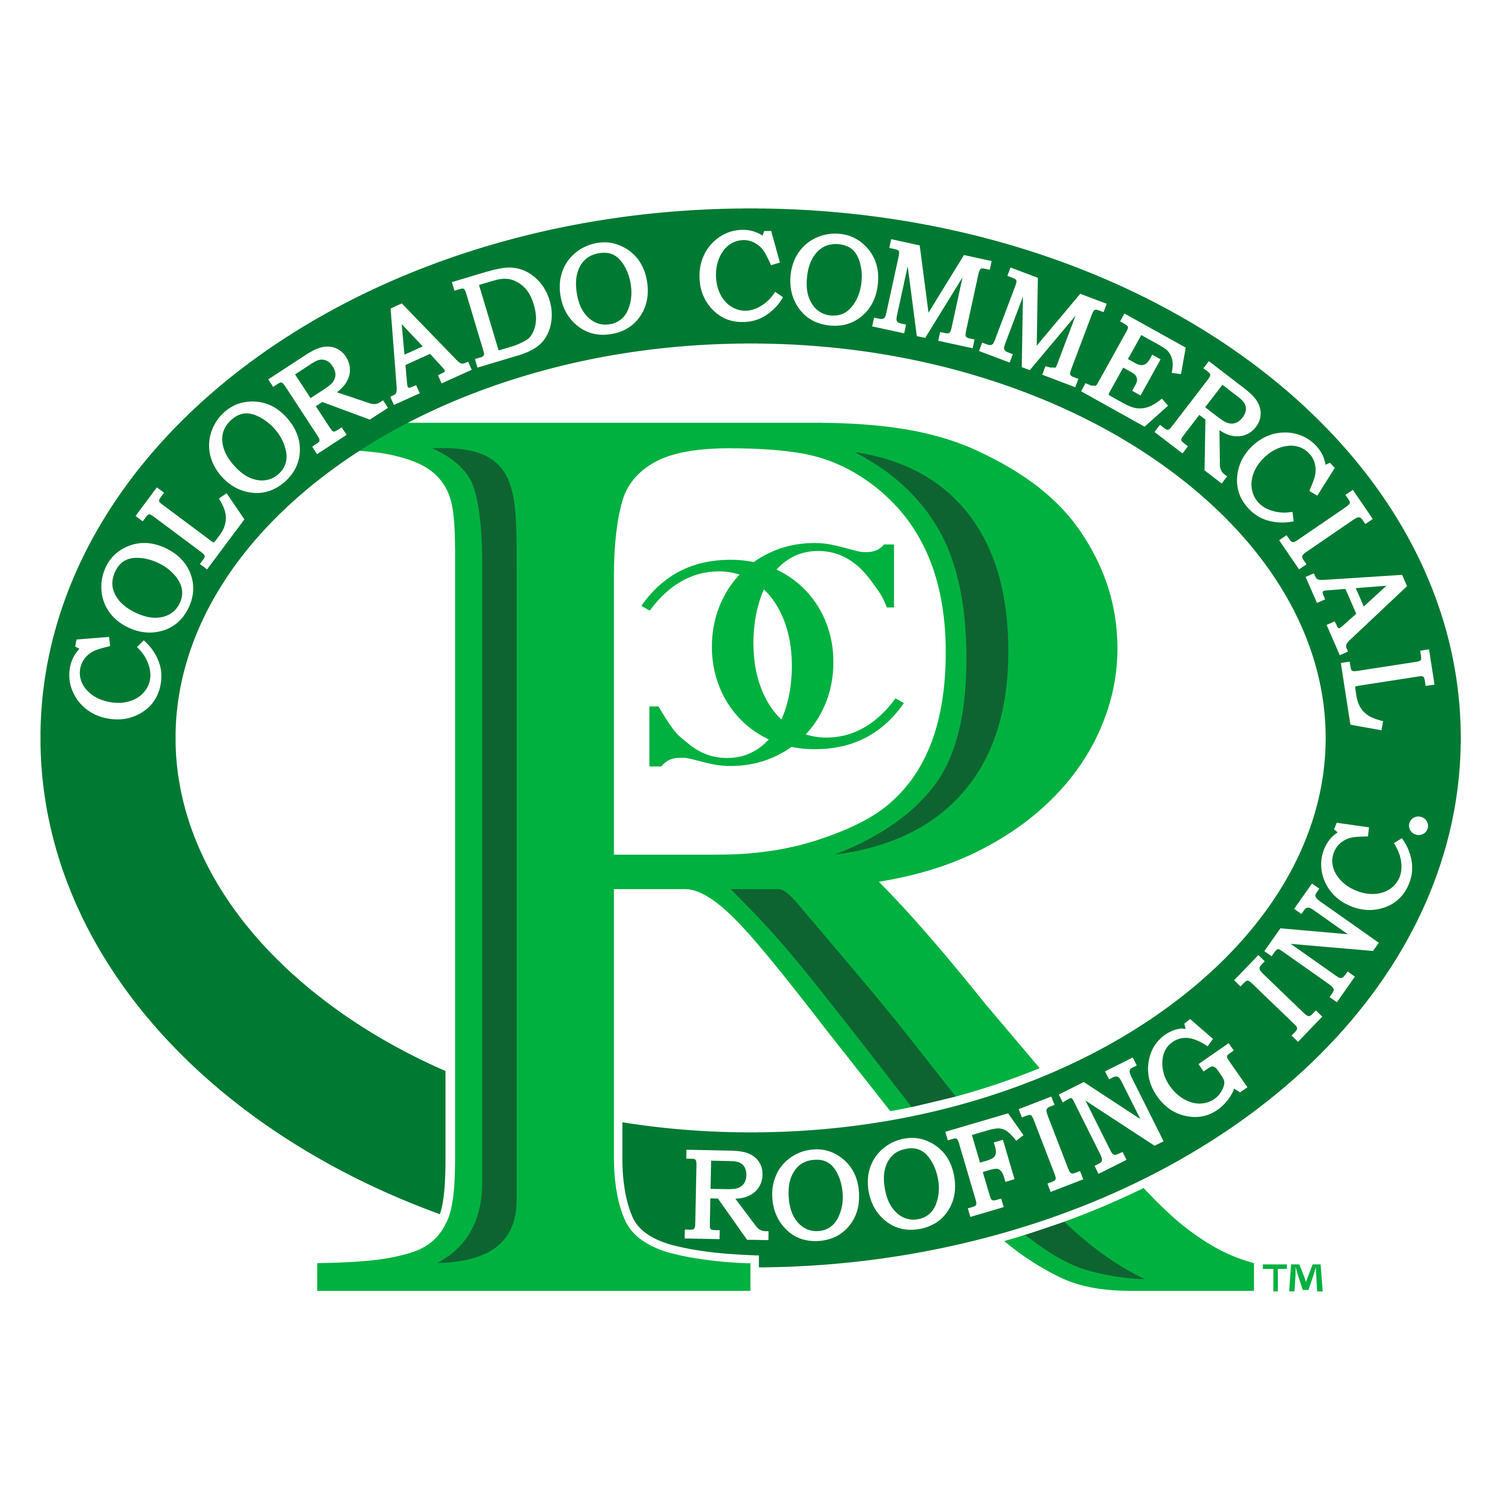 Colorado Commercial Roofing, Inc.